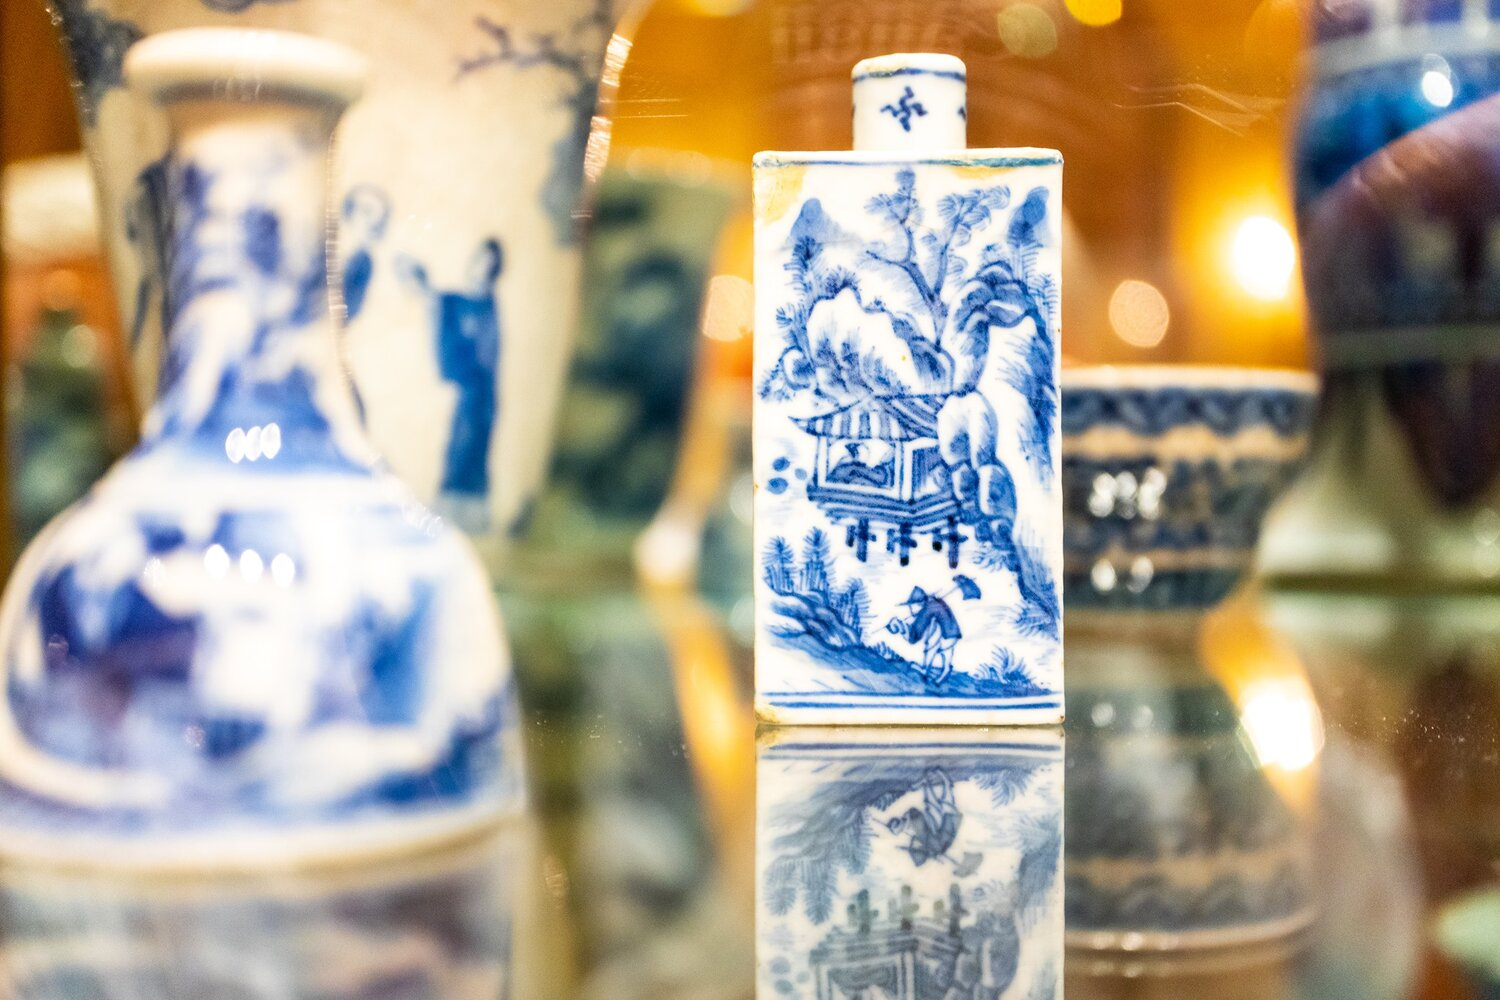 Ceramic Painting Workshop - Hosted by the Frick PittsburghExplore the imagery and symbolism of Chinese porcelain through a new permanent collection installation, then paint your own piece of decorative art to take home! Receive a personal tour of the Frick's Chinese Porcelain installation from Dawn Brean, the Frick's Associate Curator of Decorative Arts, then take part in a hand-on ceramics painting workshop.The evening will be led by Alison Zapata and Sara Tang, two of Pittsburgh's most dynamic artists, helping us to have a great time as we tap into our creativity! Materials and light refreshments will be provided. Advance registration and pre-payment required. No experience required, just curiosity!